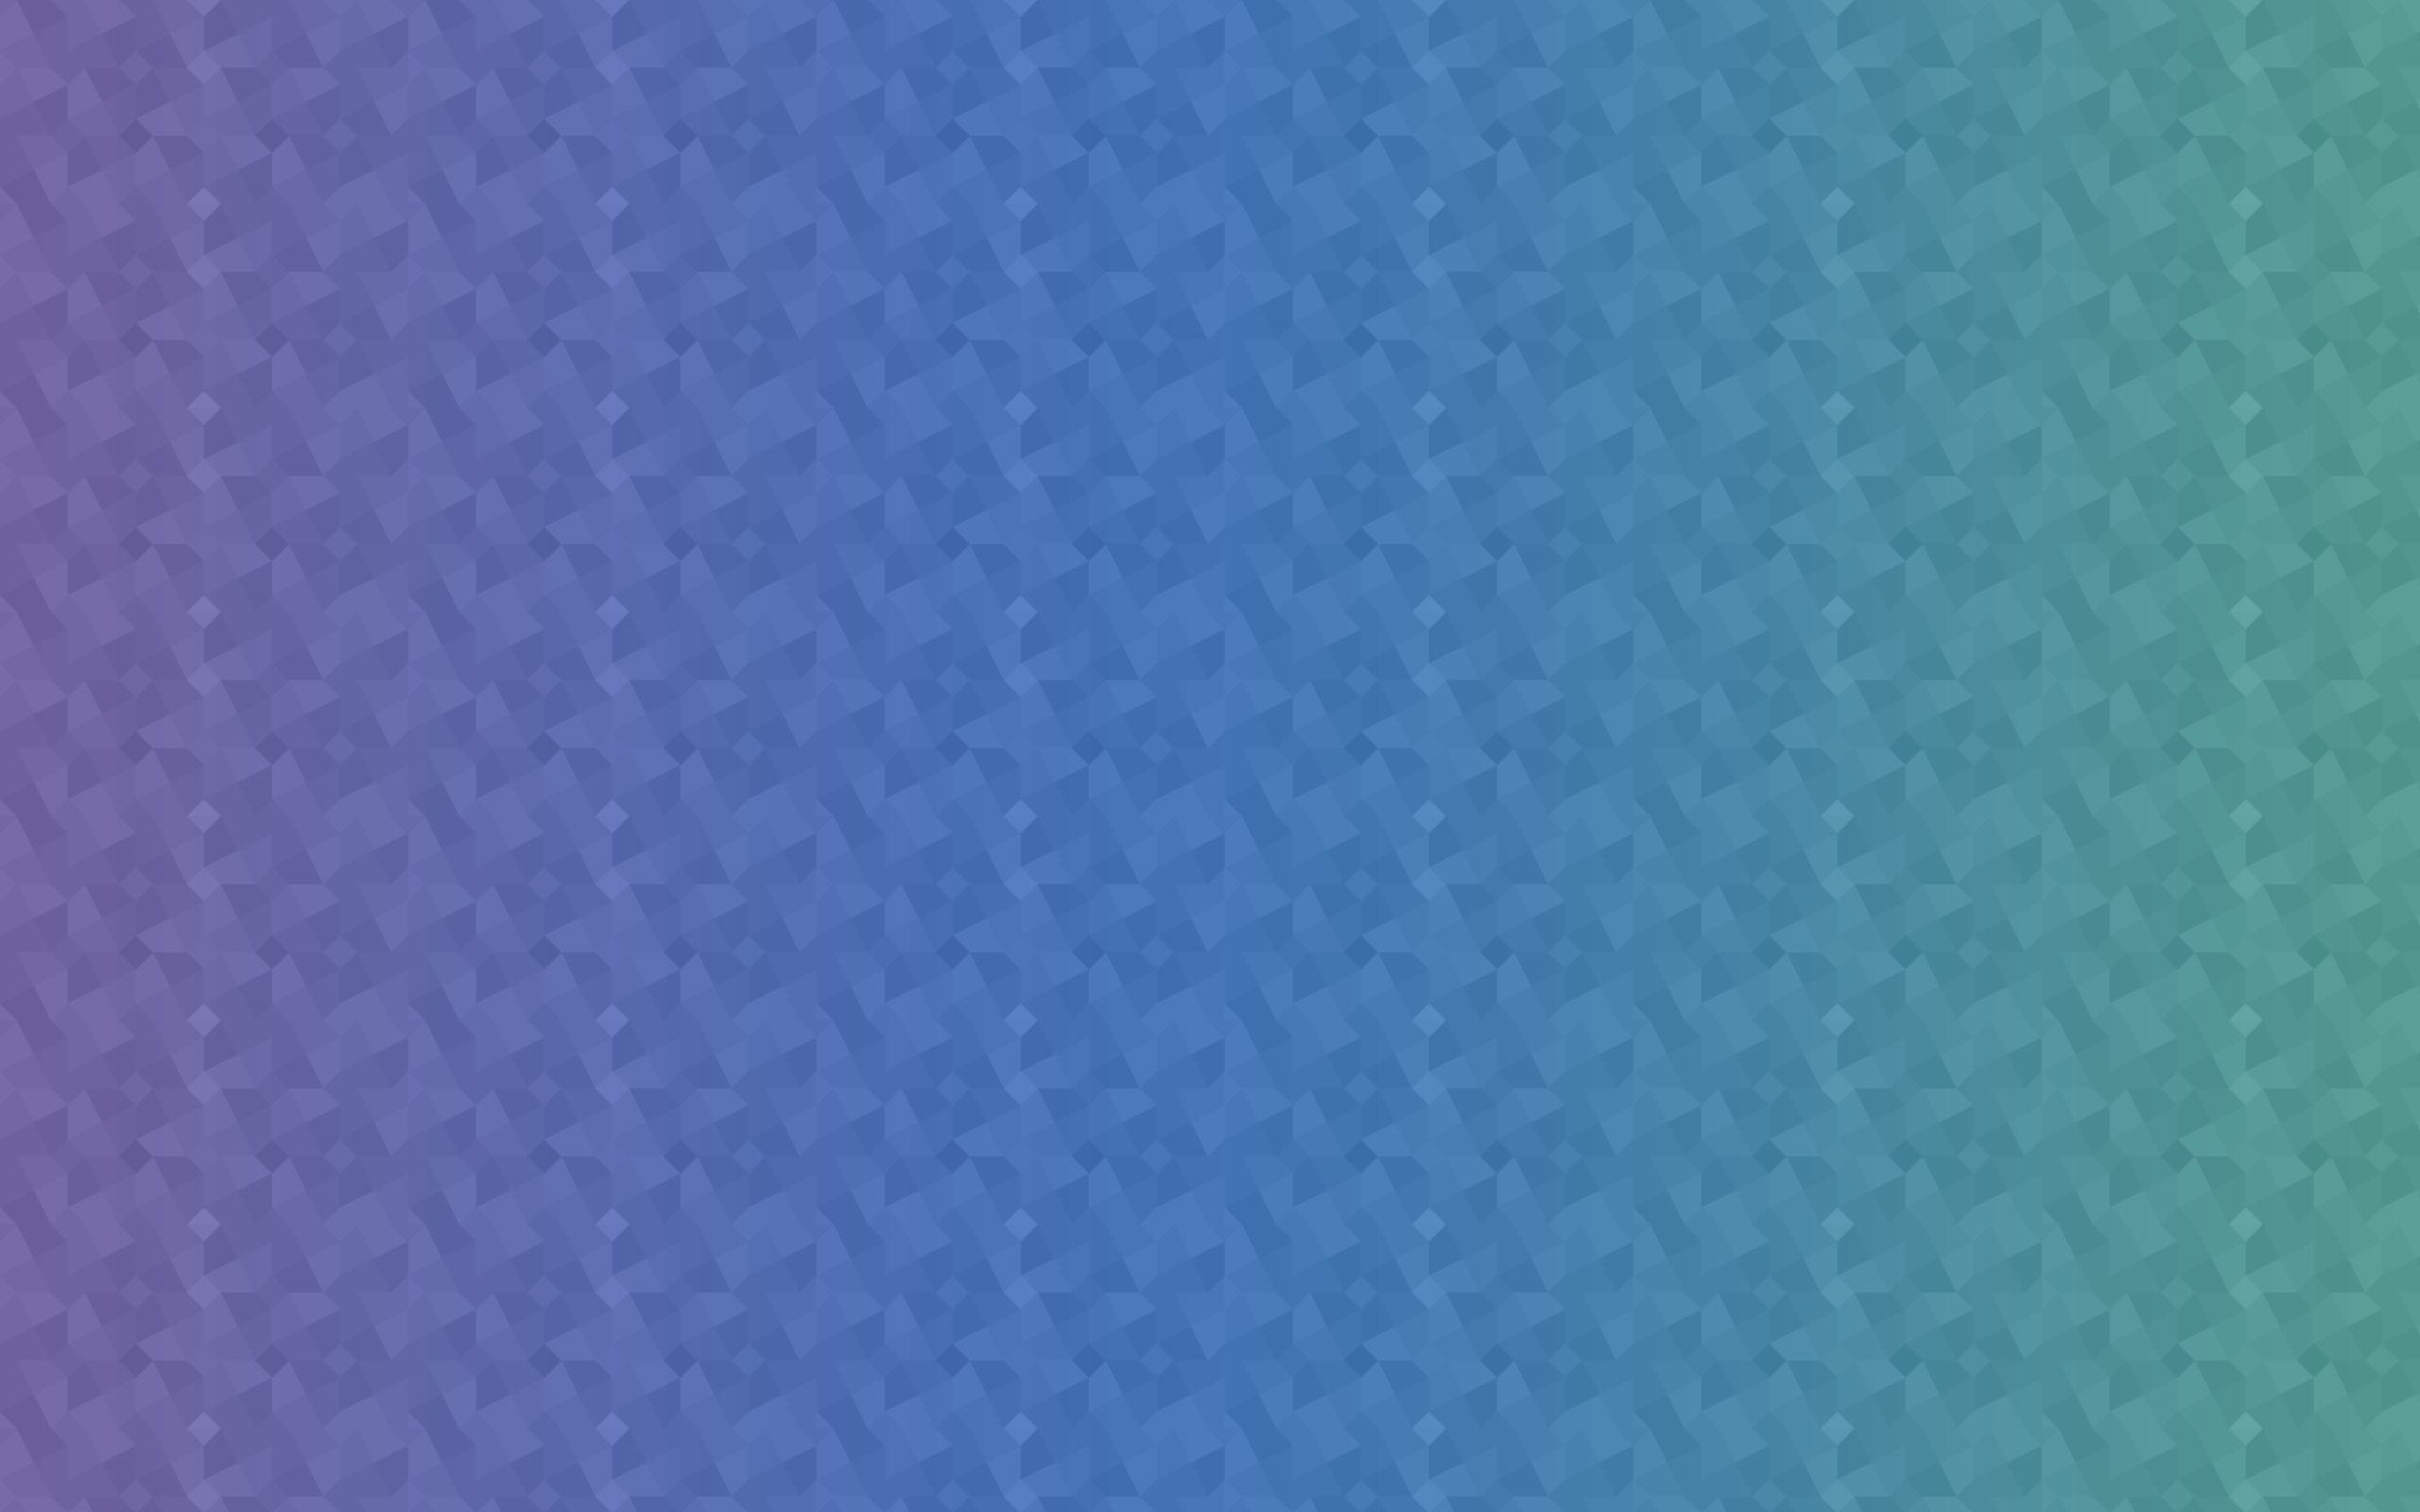 Android Wallpaper Isometric Patterns